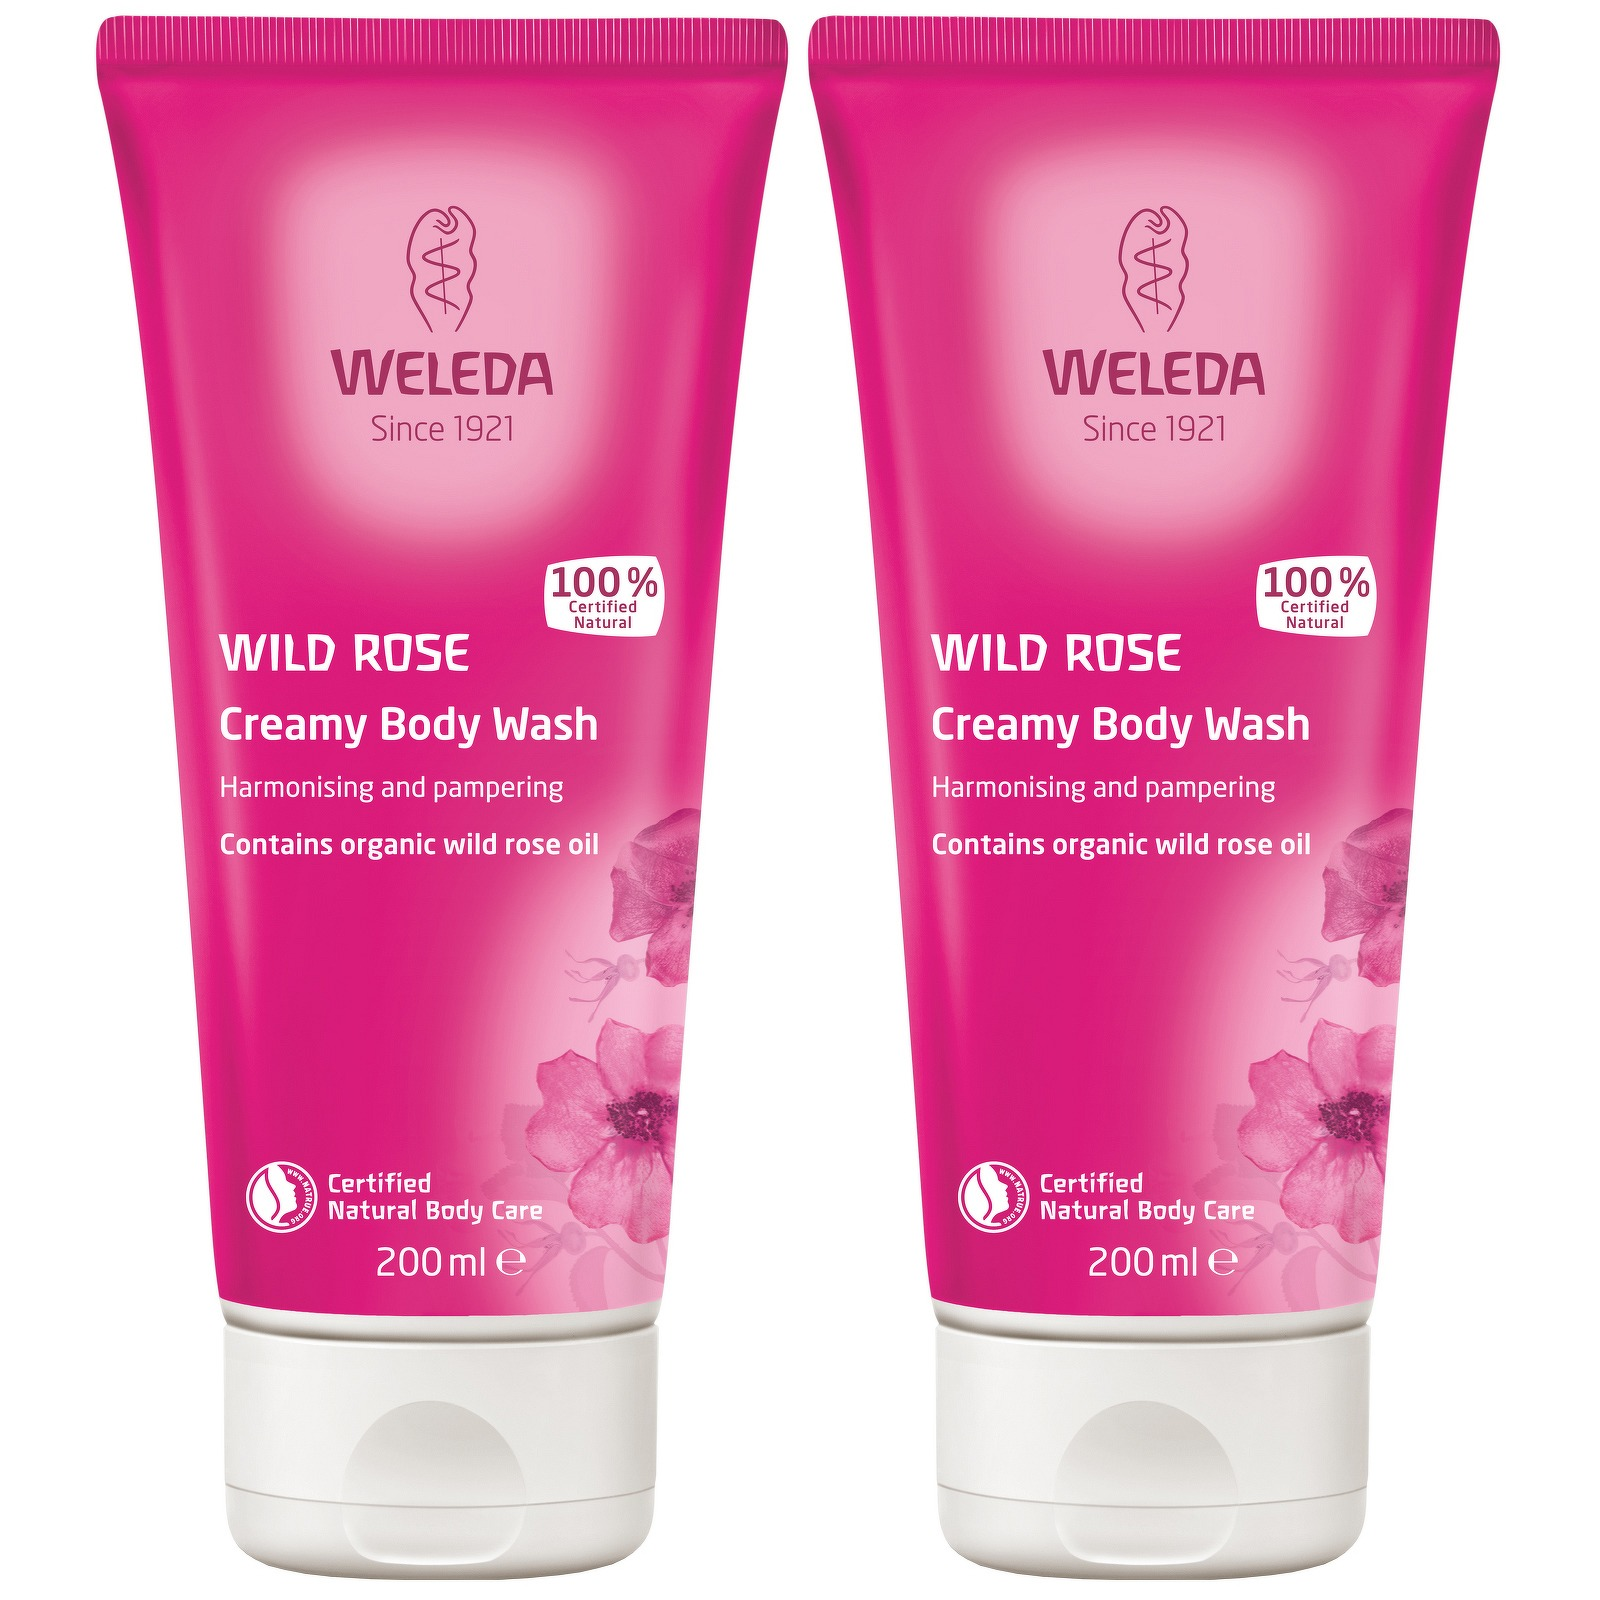 Weleda Body Care Wild Rose Creamy Body Wash 200ml x 2